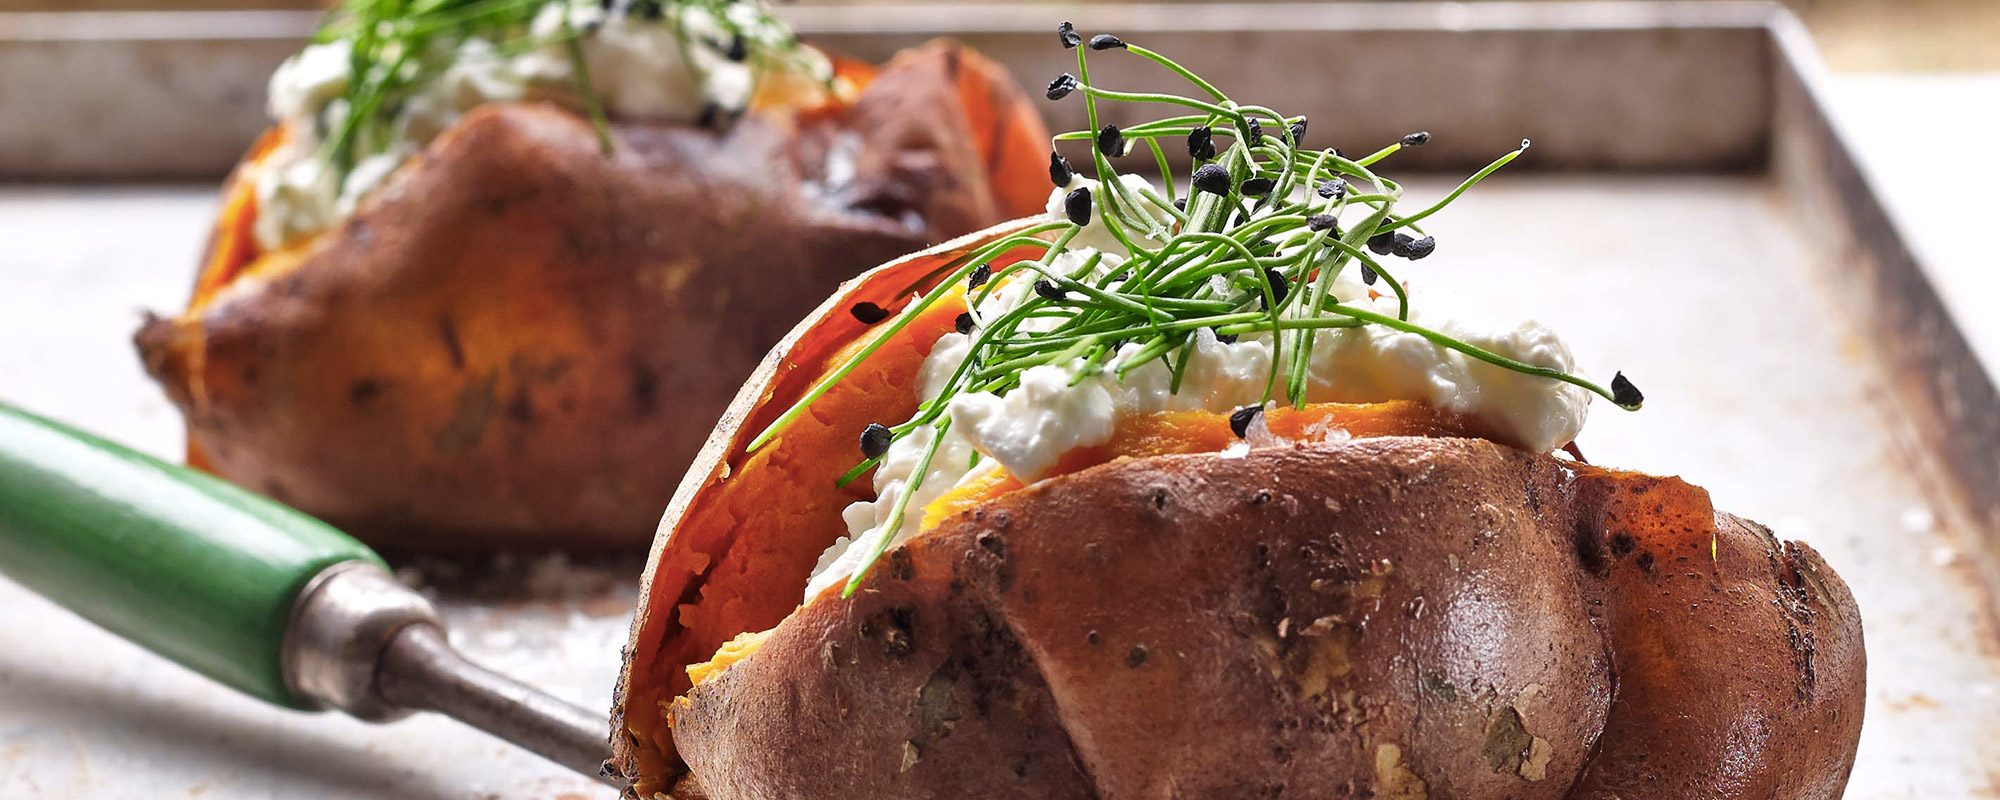 Tremendous Recipe Sweet Jacket Potato With Cottage Cheese And Garlic Download Free Architecture Designs Scobabritishbridgeorg